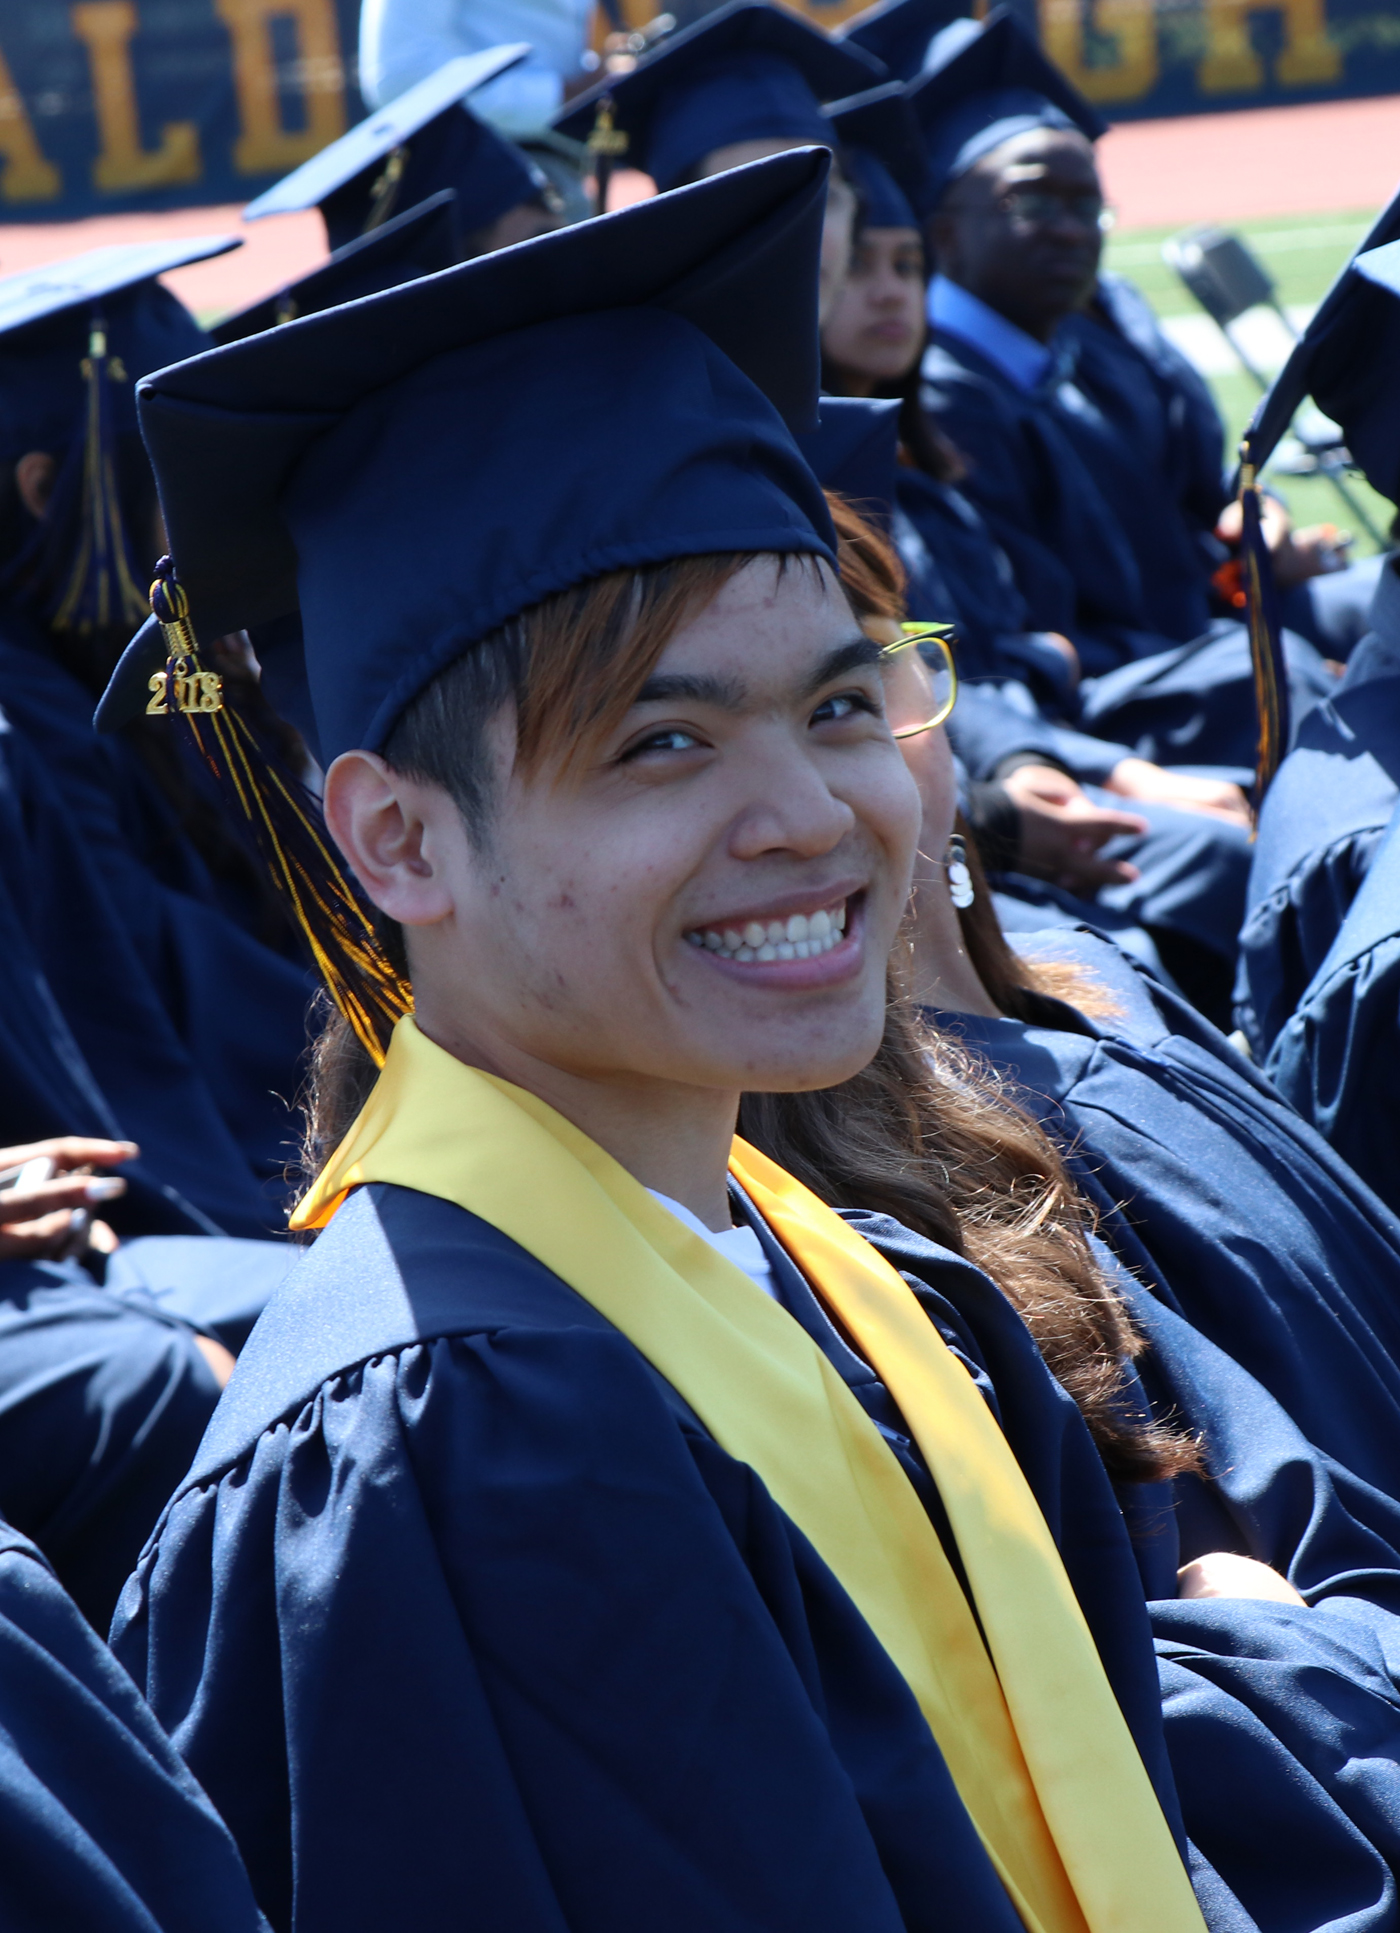 Graduate Jimmy Tran is the first to graduate from MHS with an Associates Degree from Bunker Hill Community College at the same time